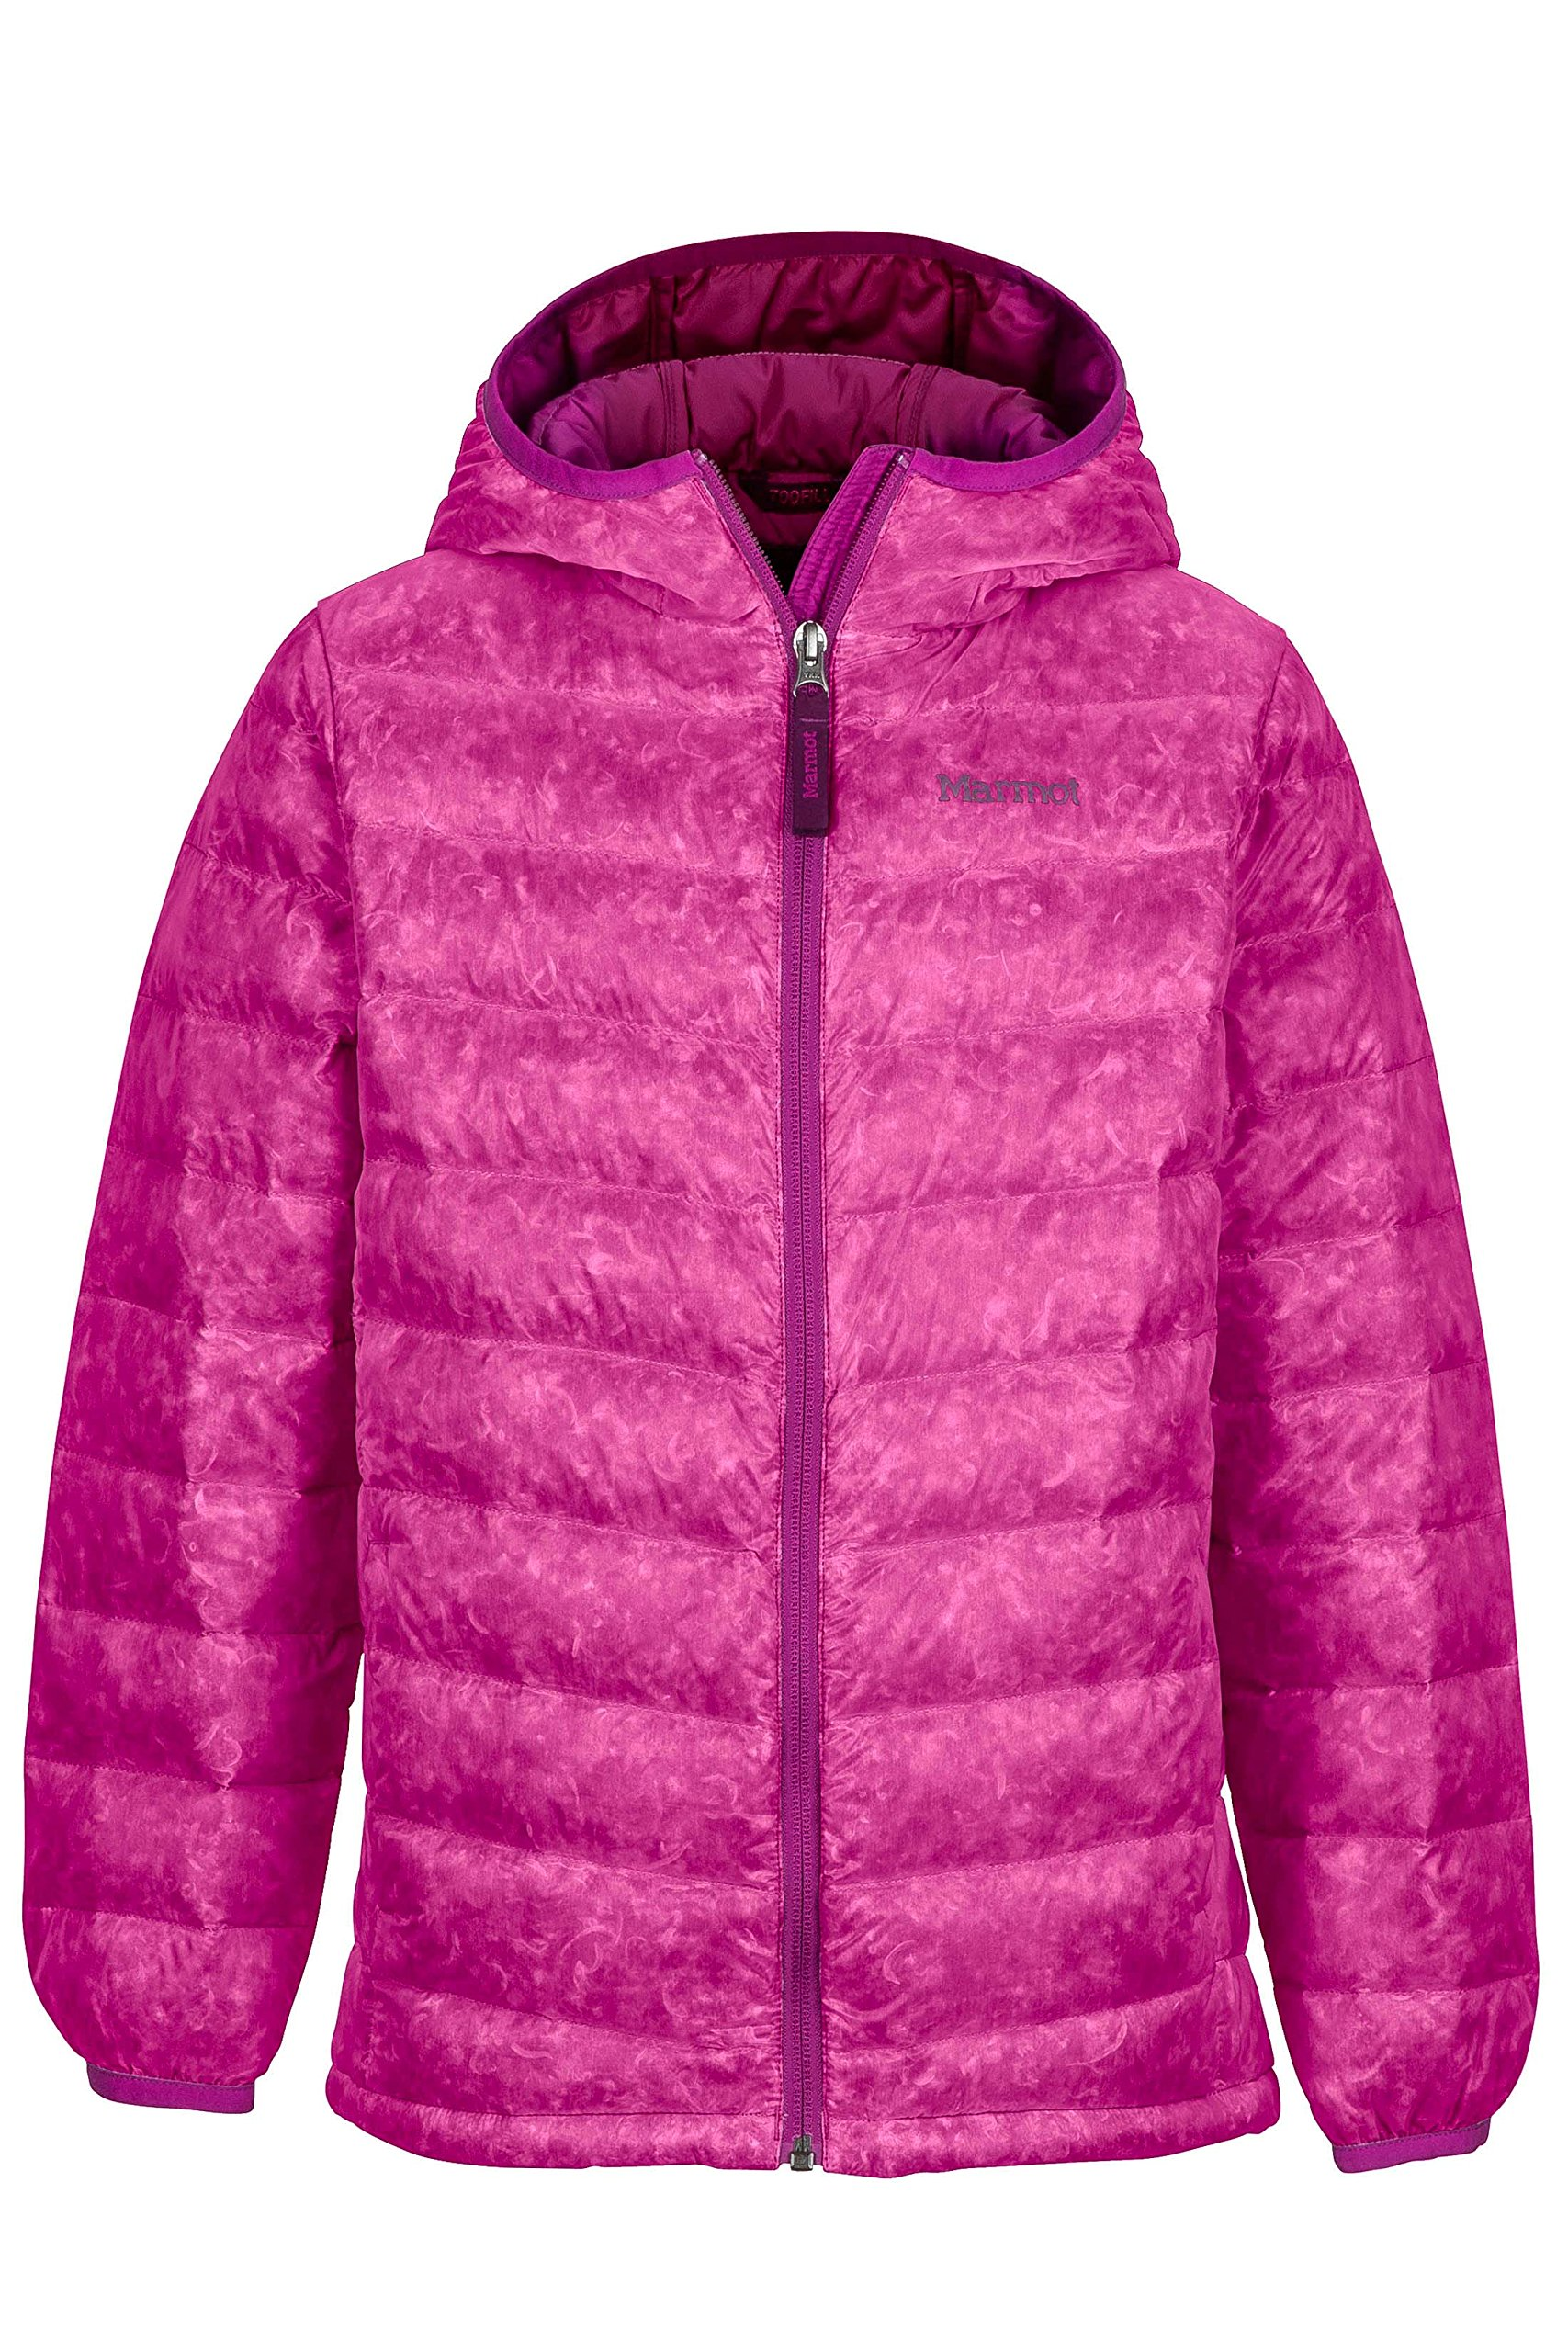 Marmot Nika Girls' Down Puffer Jacket, Fill Power 550, Purple Orchid, Small by Marmot